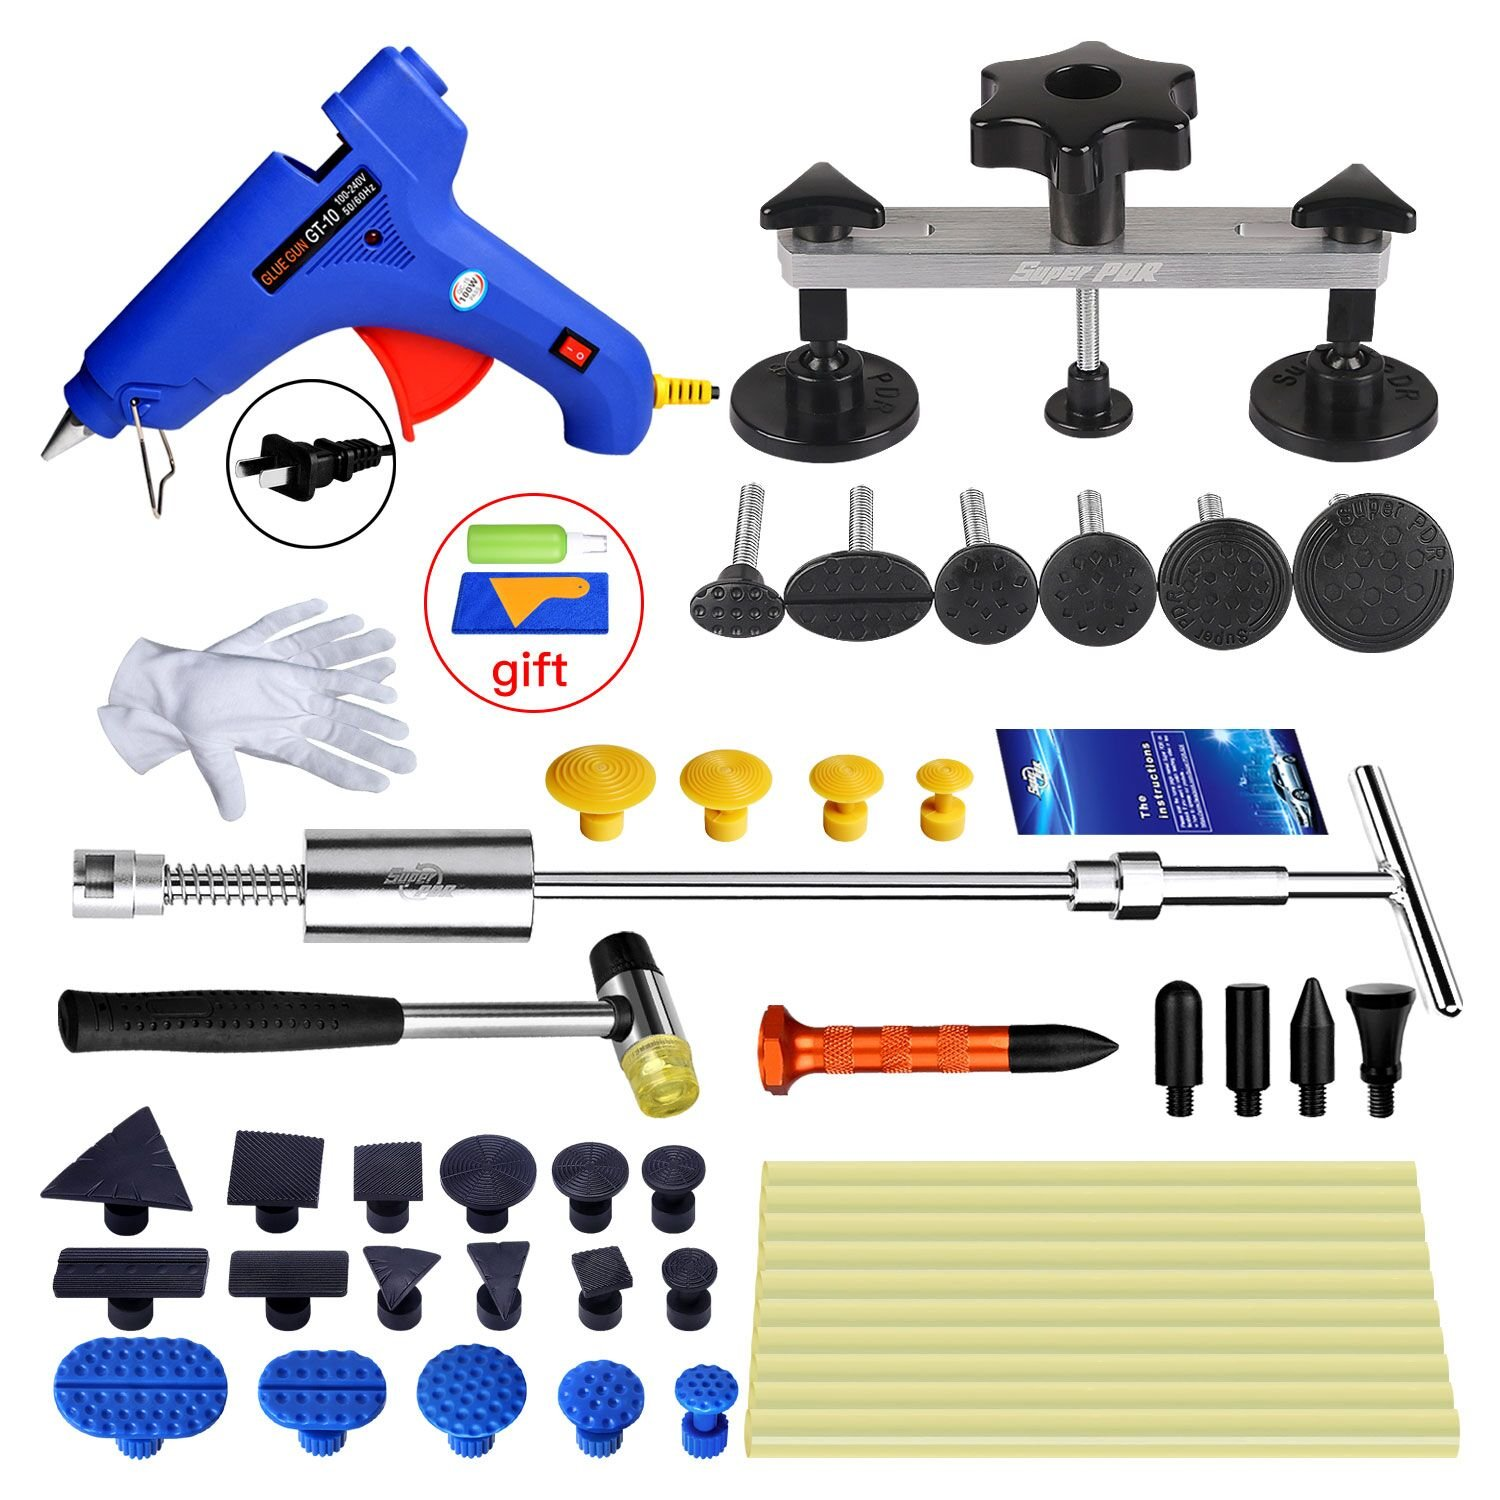 Fly5D 44pcs Auto Paintless Dent Repair Tool Kit with Pops a Dent for Car Dent Removal